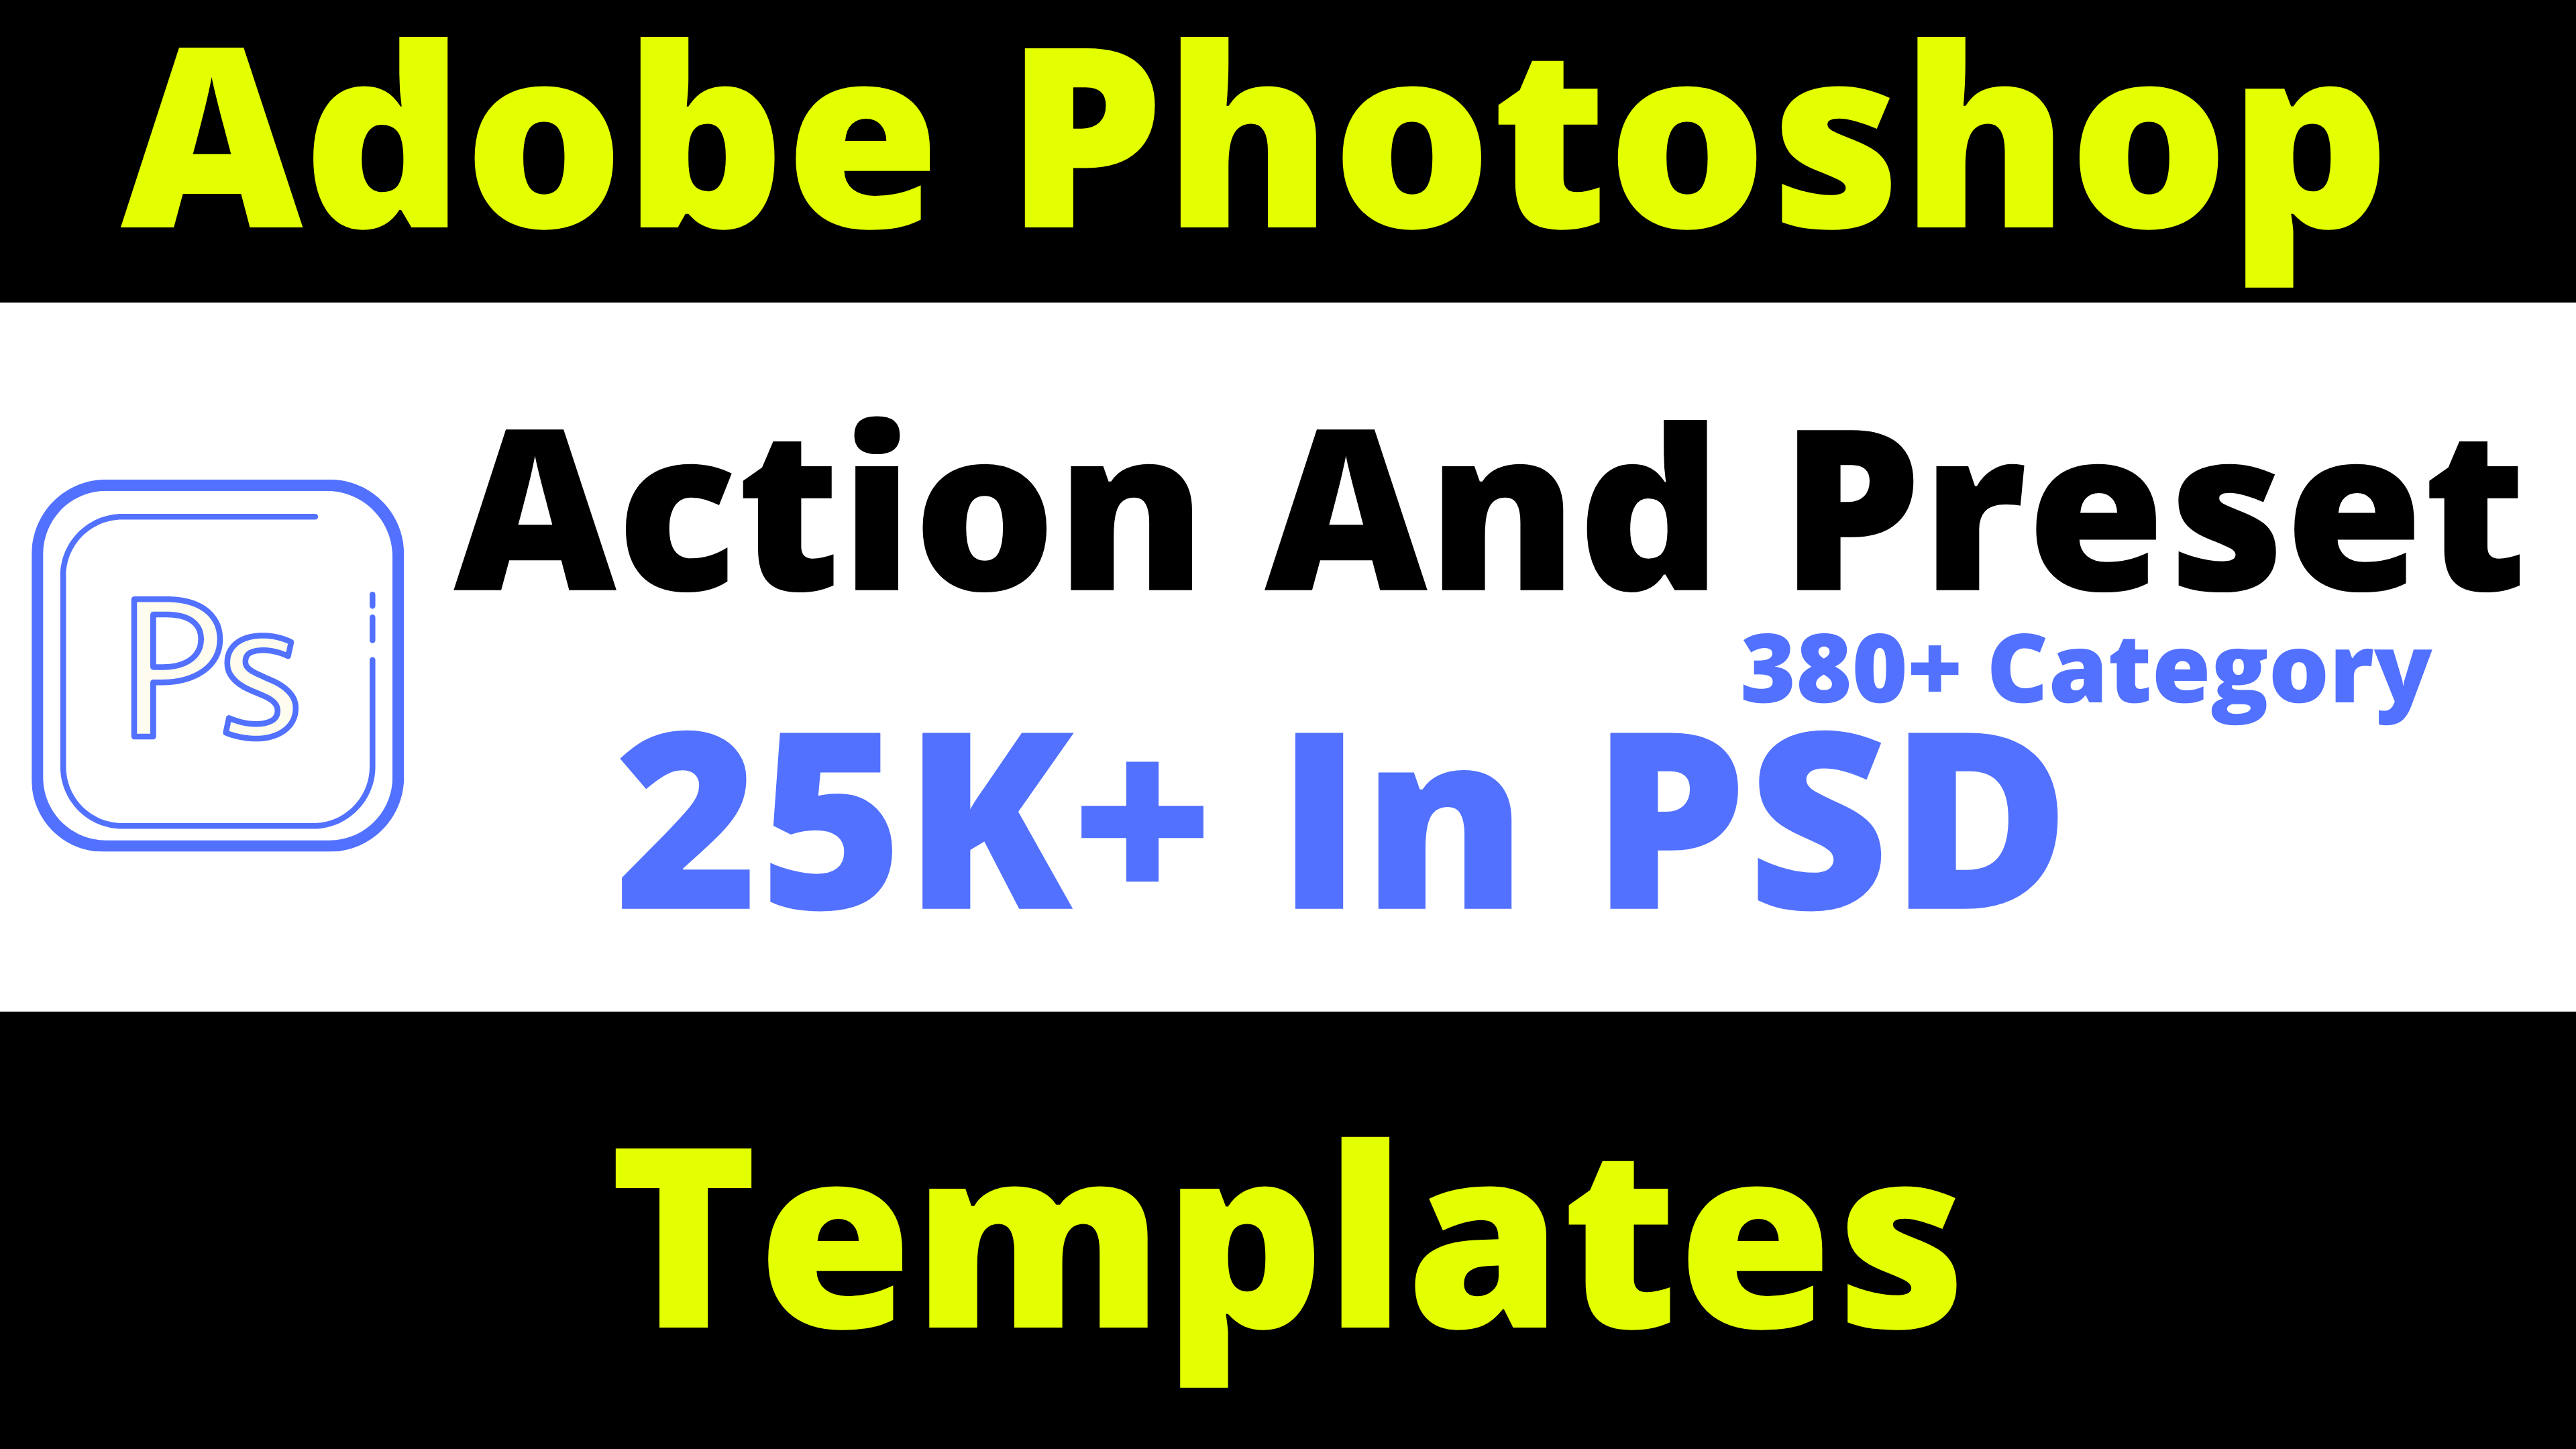 Adobe Action And Preset 380+ Category Templates